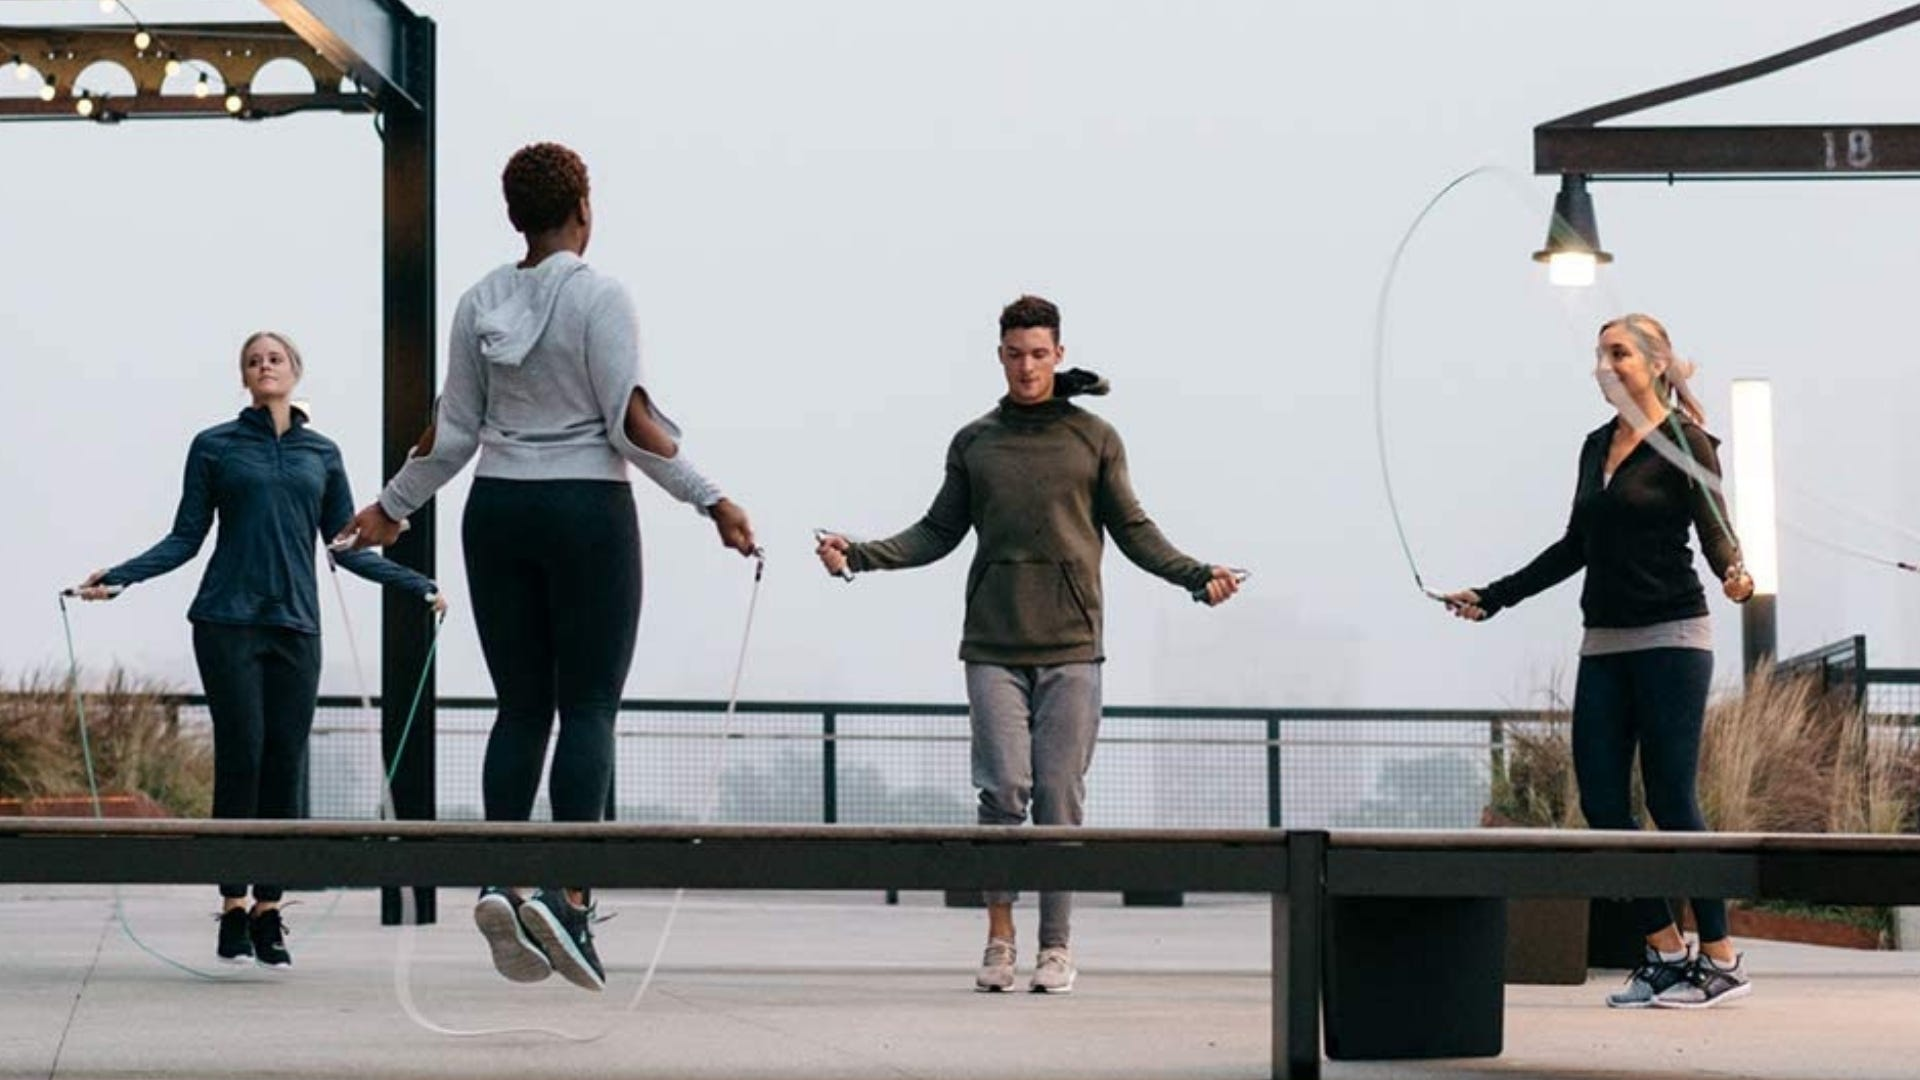 Four people are jumping rope outside.